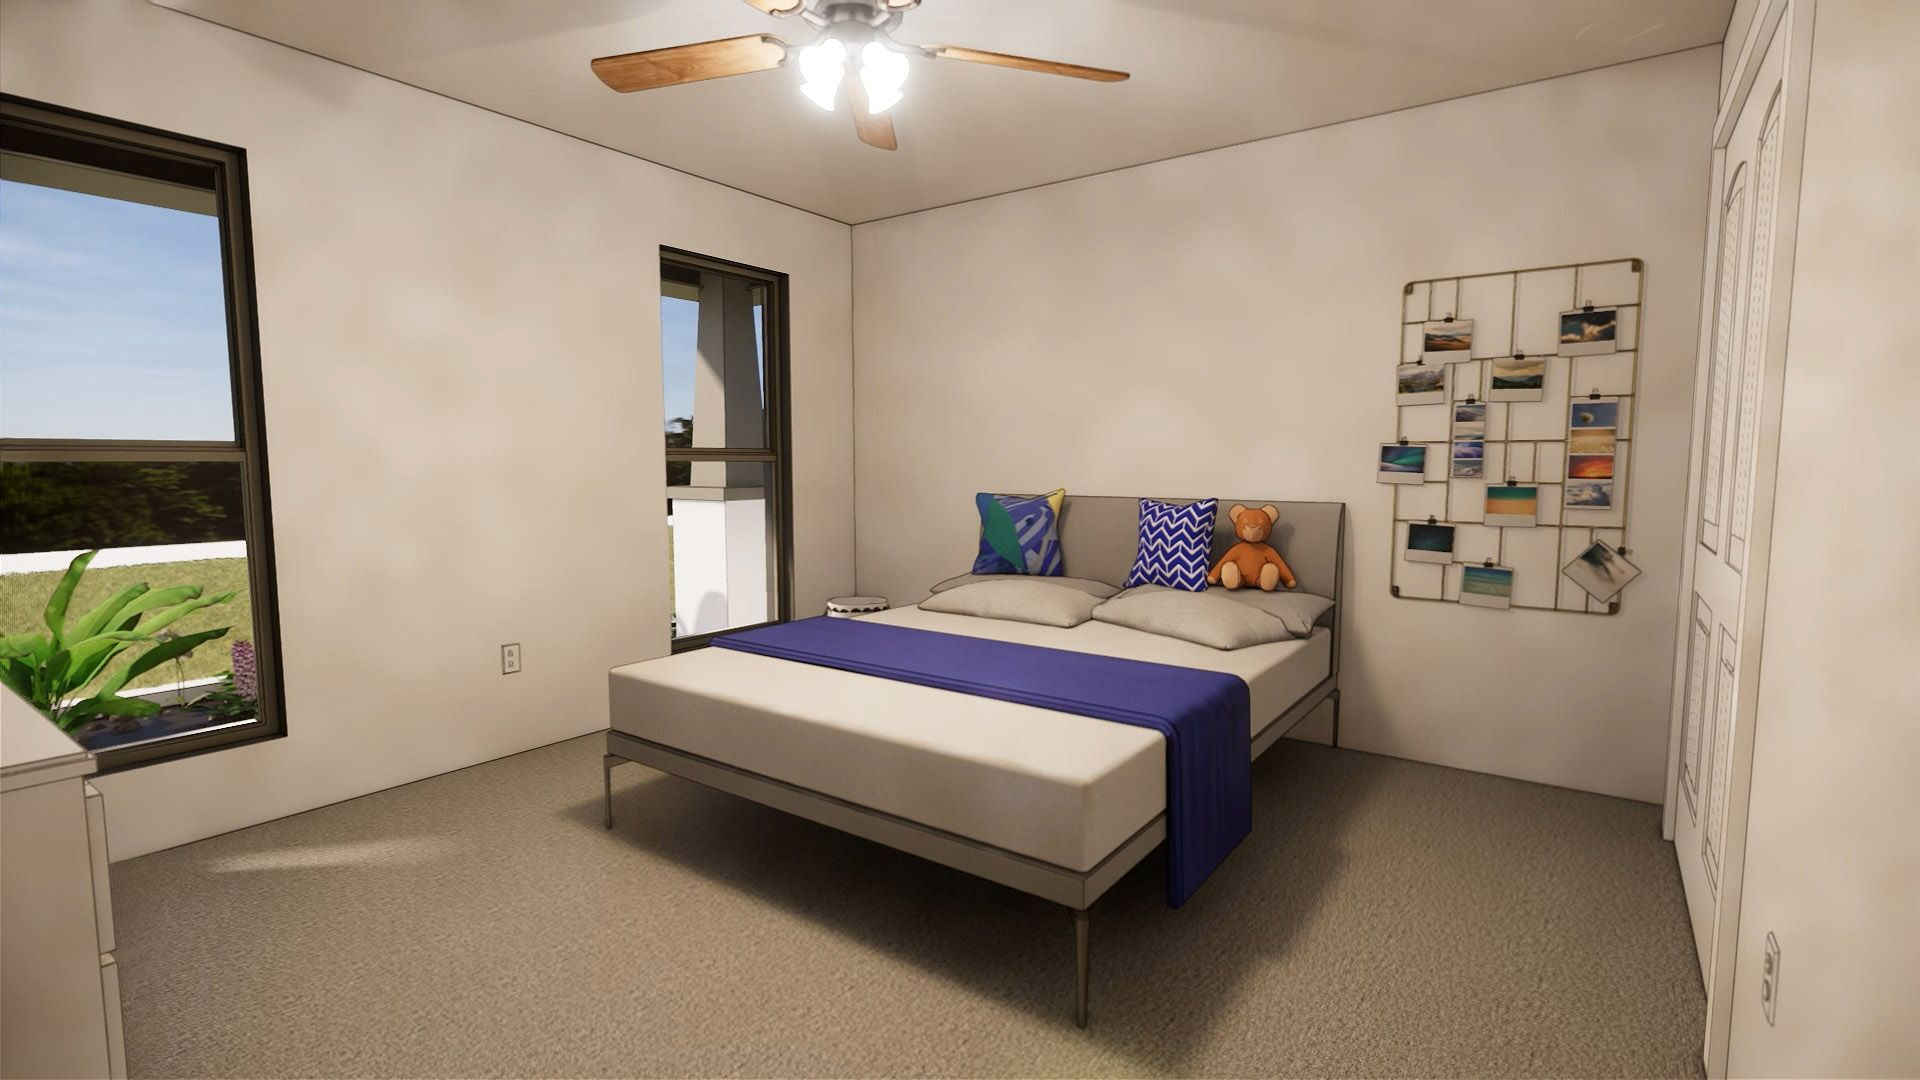 Bedroom featured in the Pamela By Betenbough Homes in Lubbock, TX